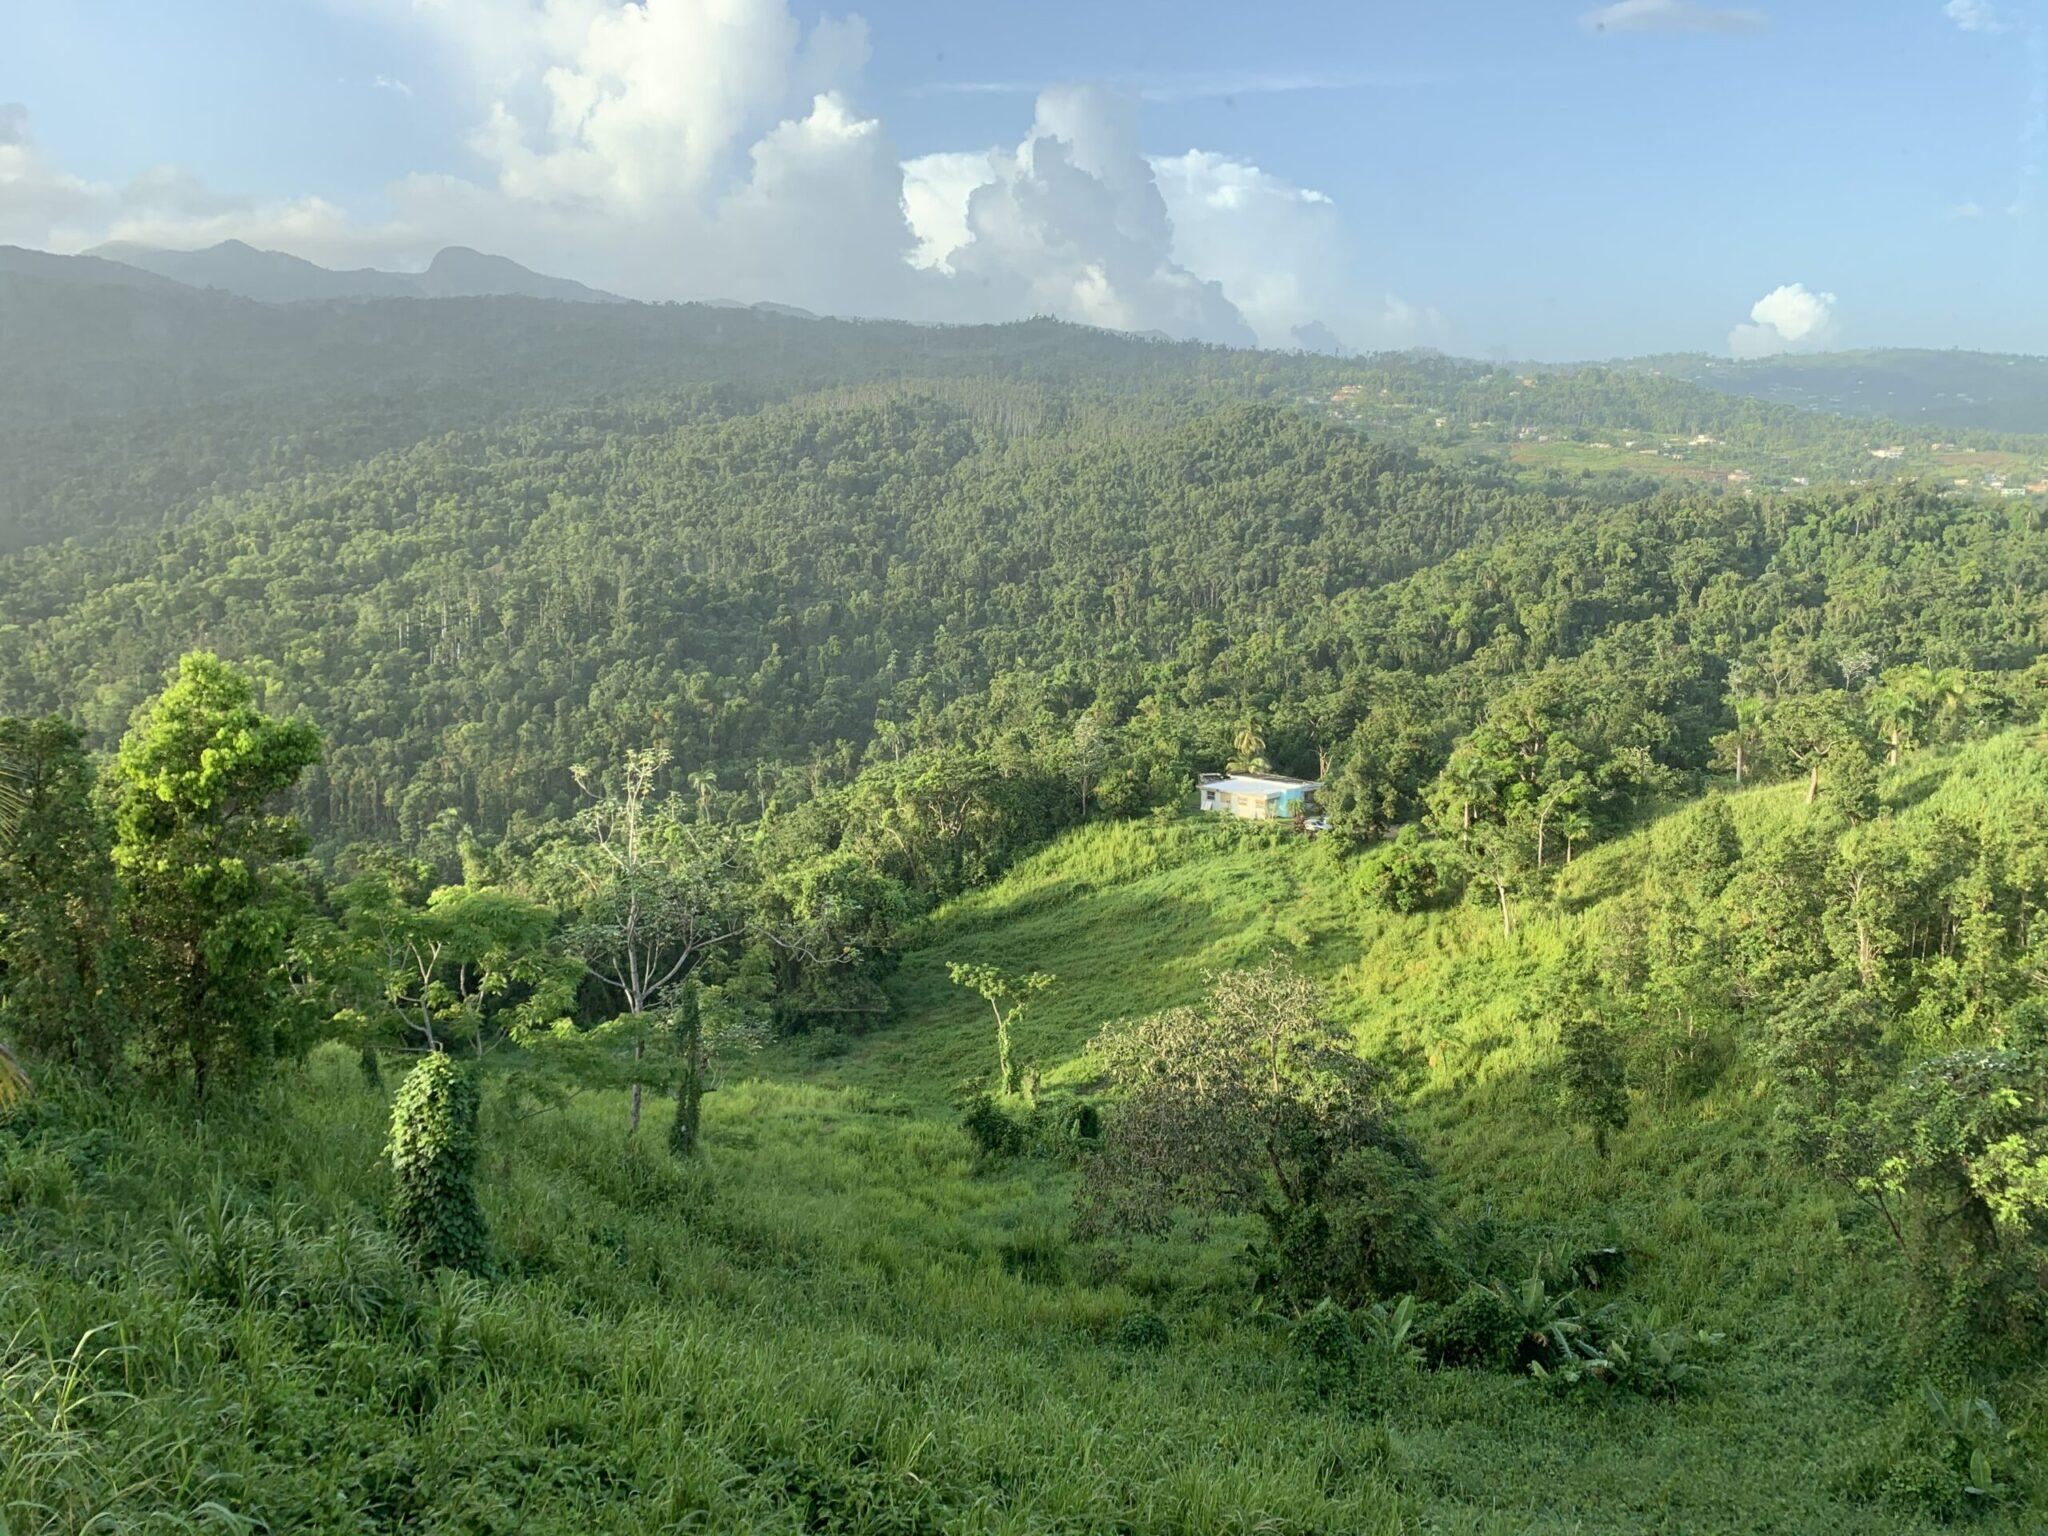 View of El Yunque Rainforest